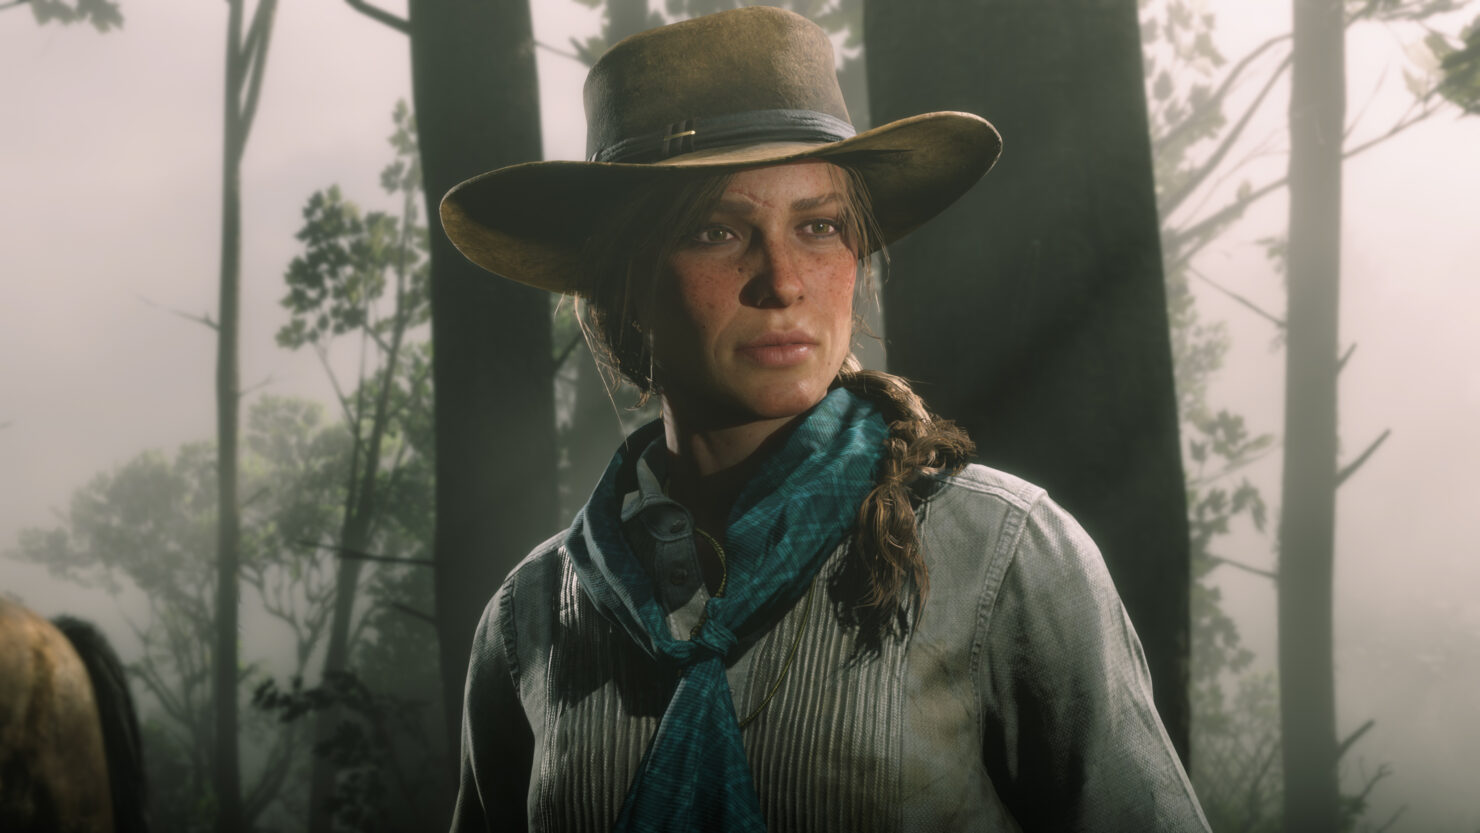 RDR2 PC update